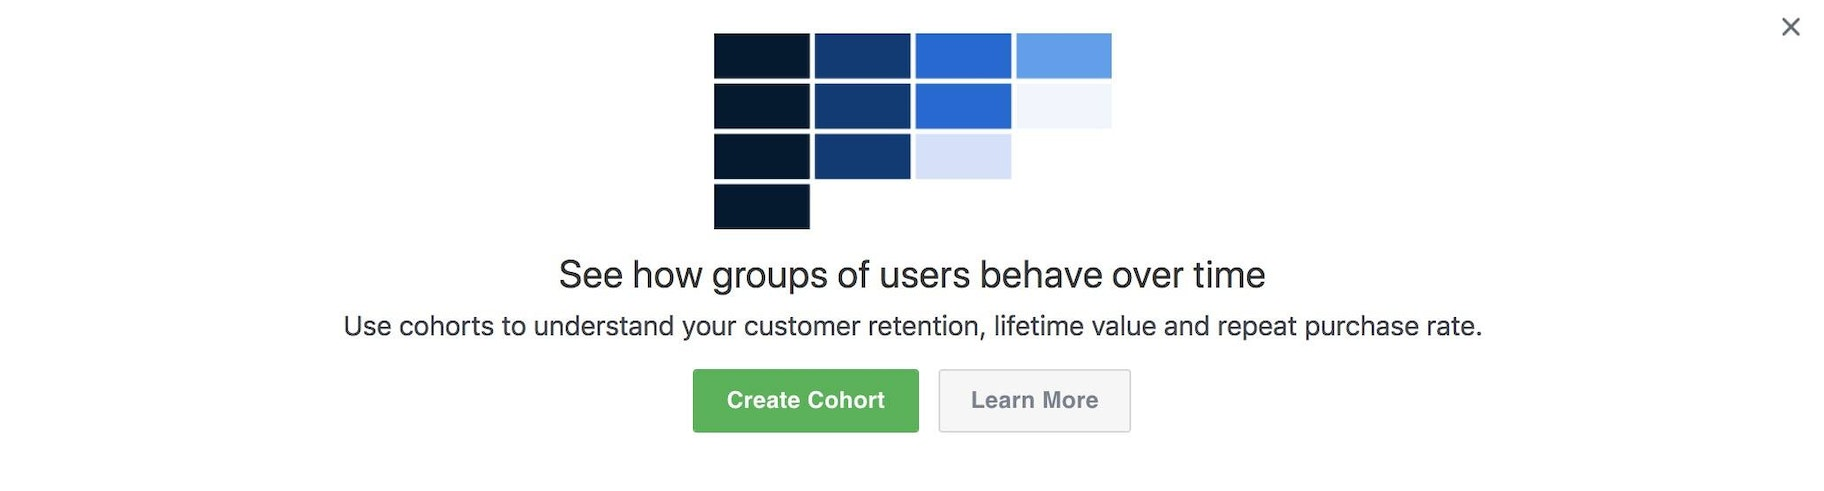 Creating cohorts in Facebook analytics